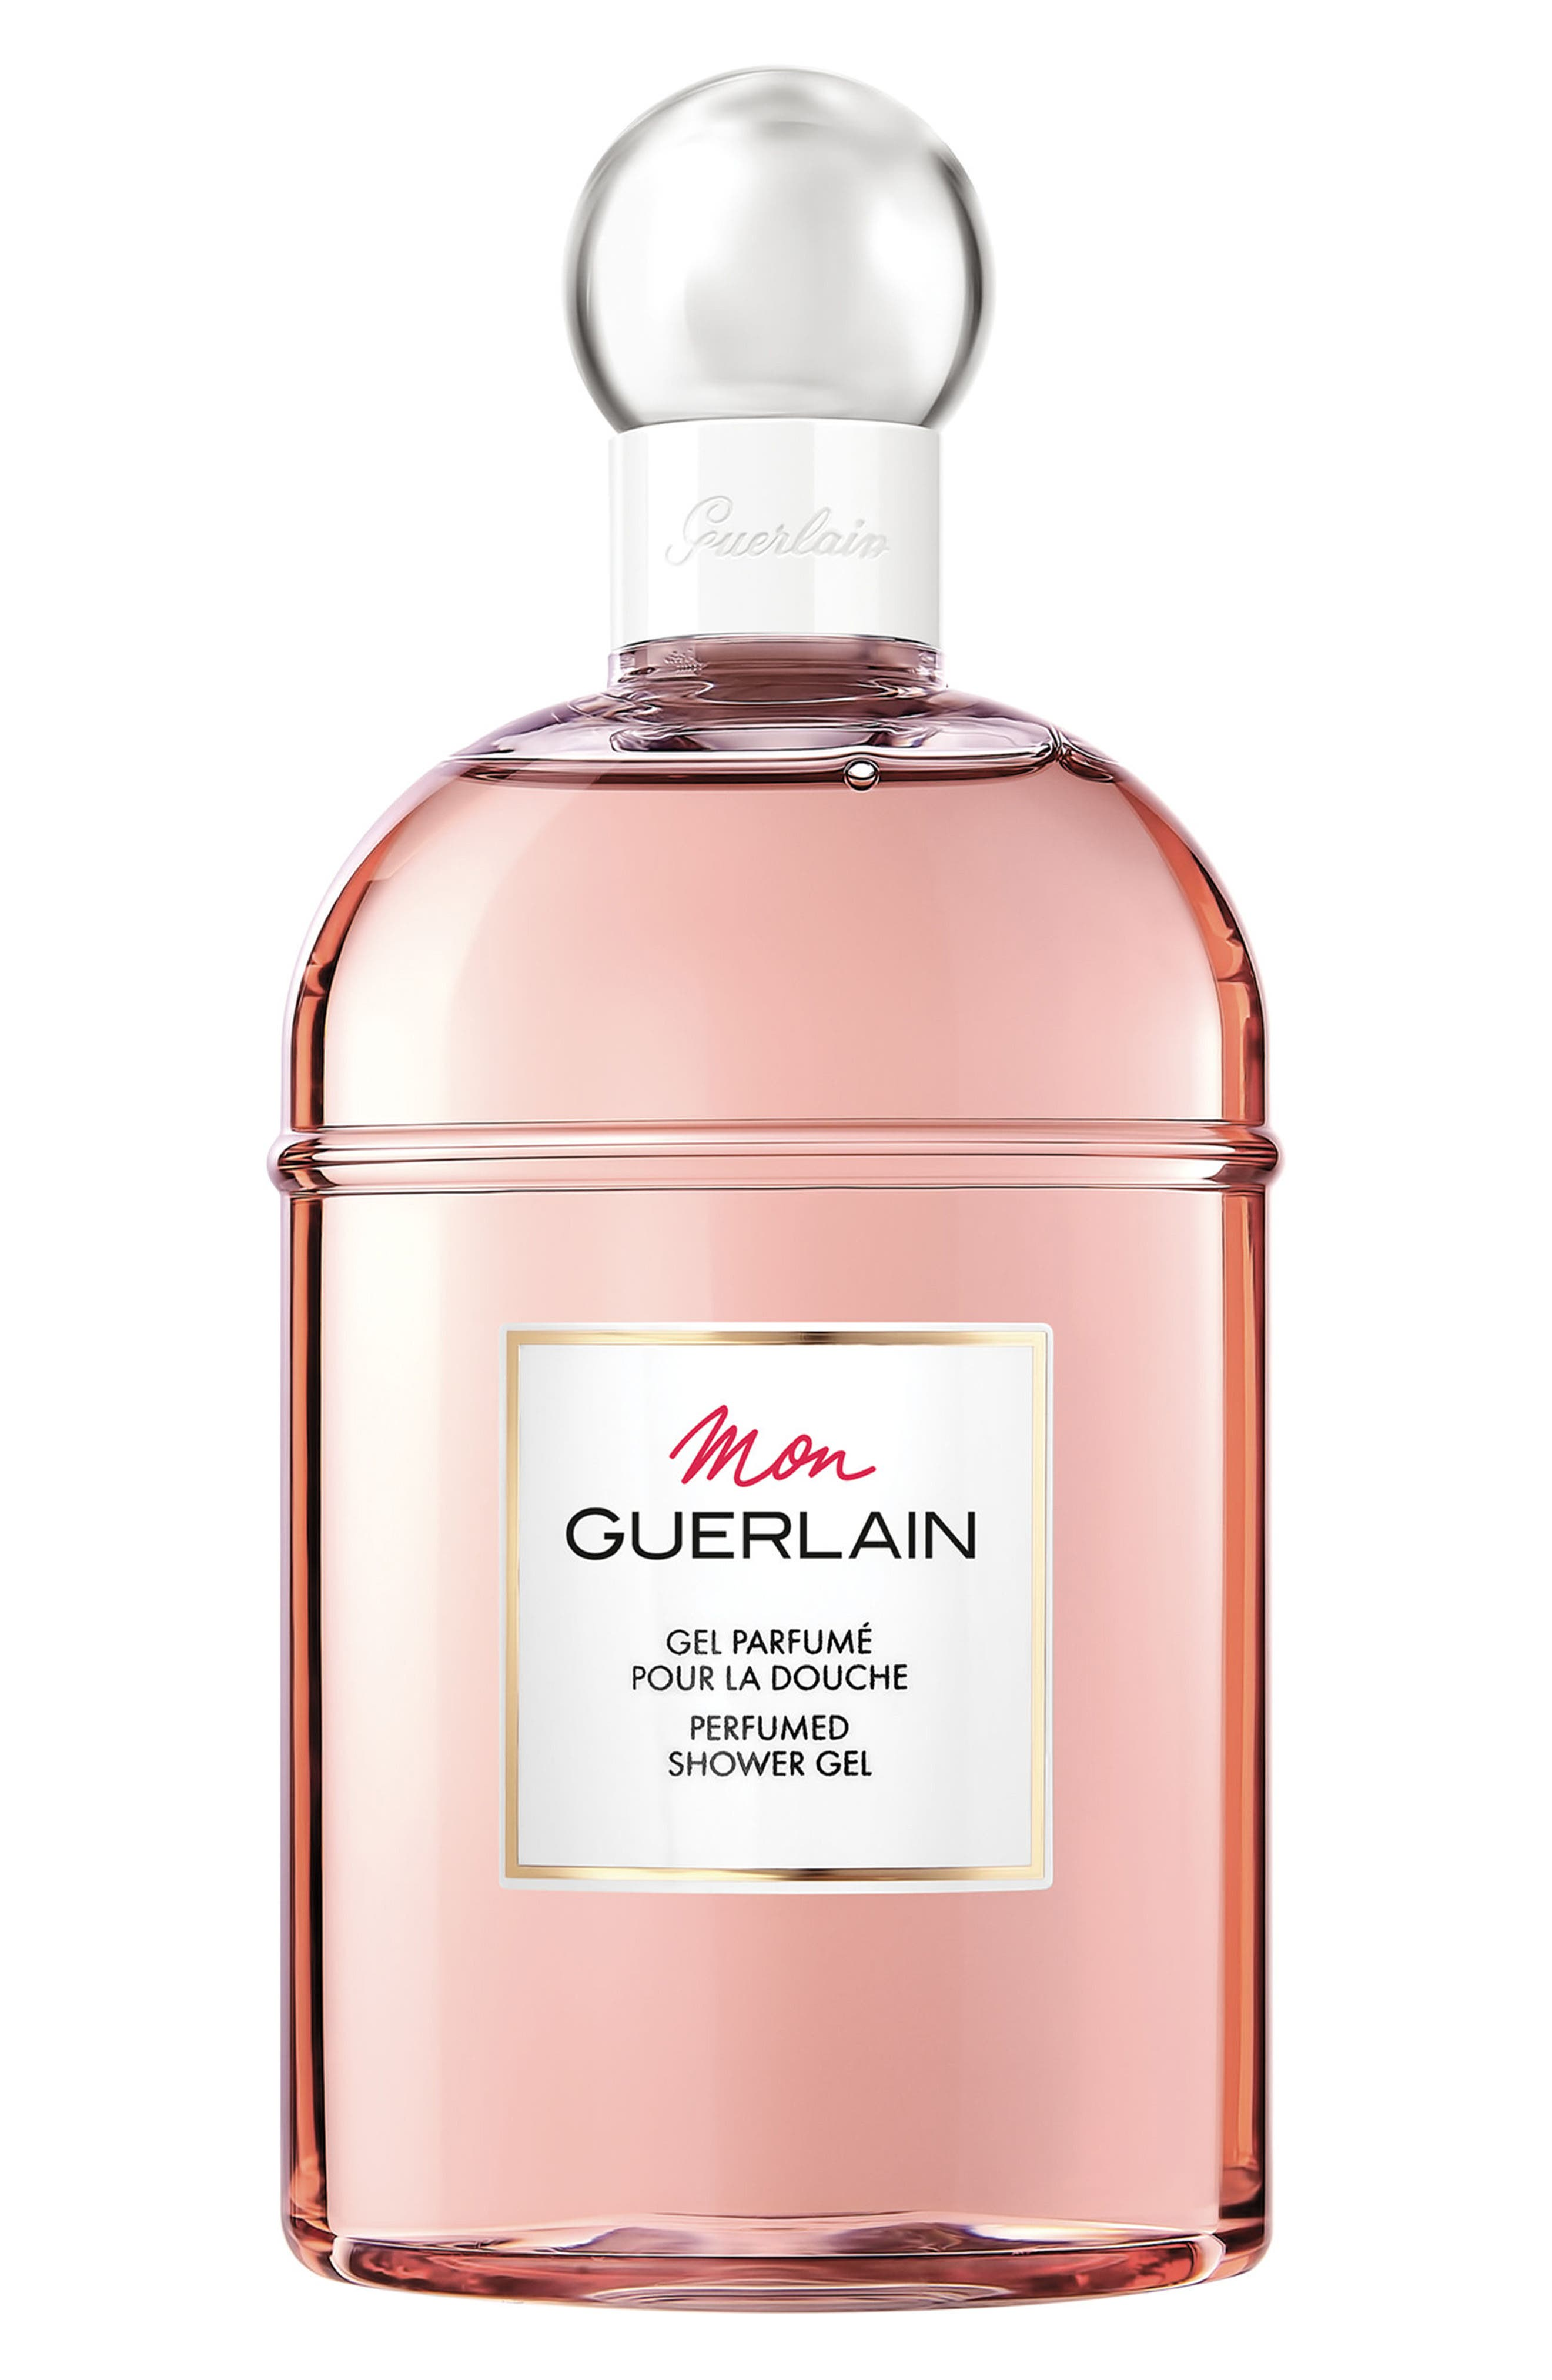 Mon Guerlain Perfumed Shower Gel,                         Main,                         color, No Color